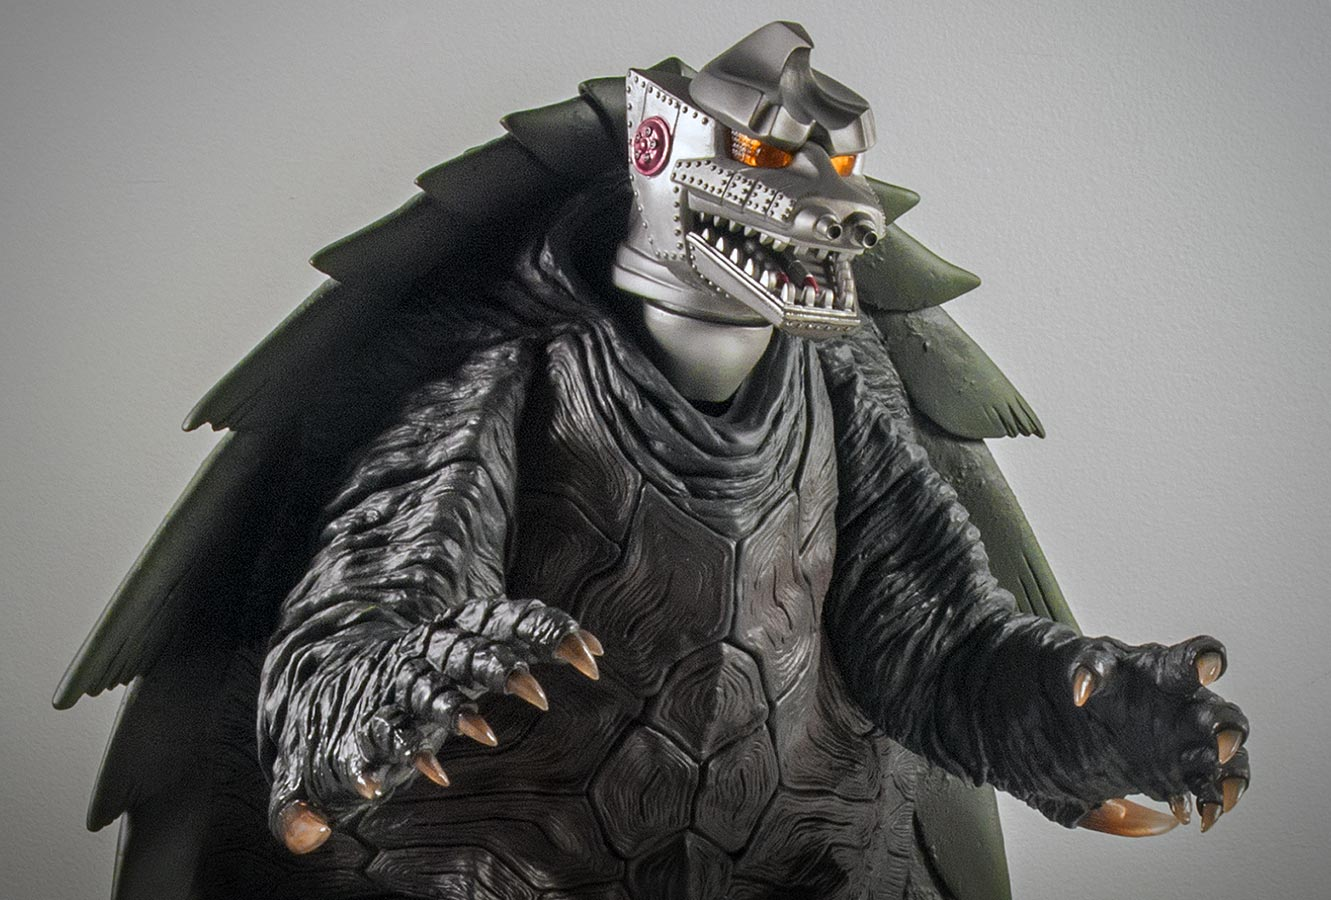 X-Plus 30cm Mechagodzilla head on 30cm Gamera 1999 body.